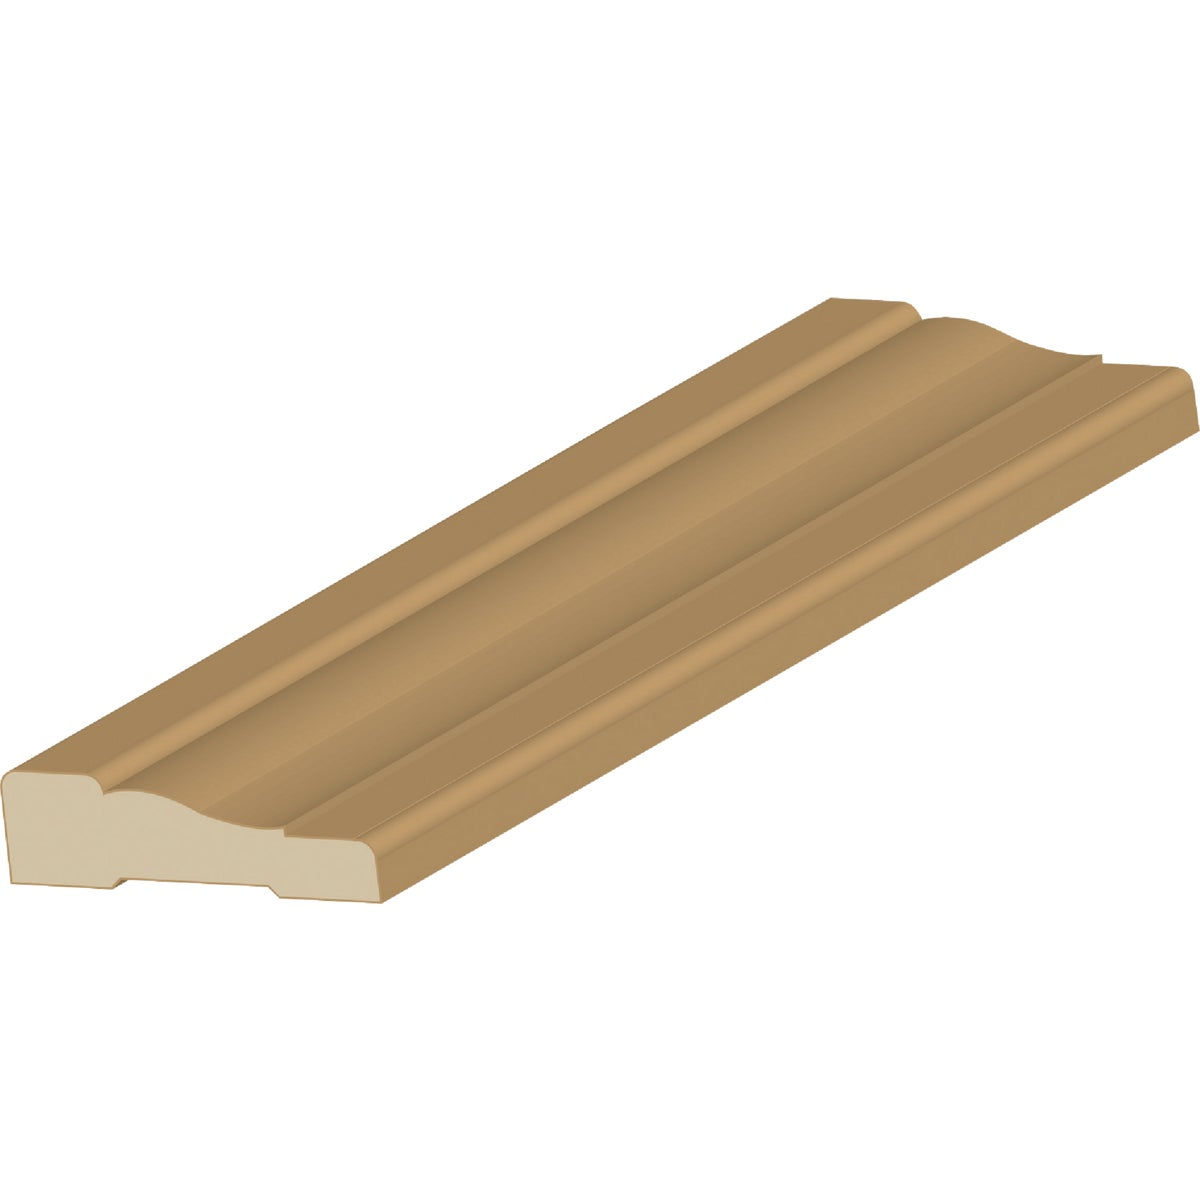 WM356 10' COL CASING - 35610PCRA by Jim White Millwork